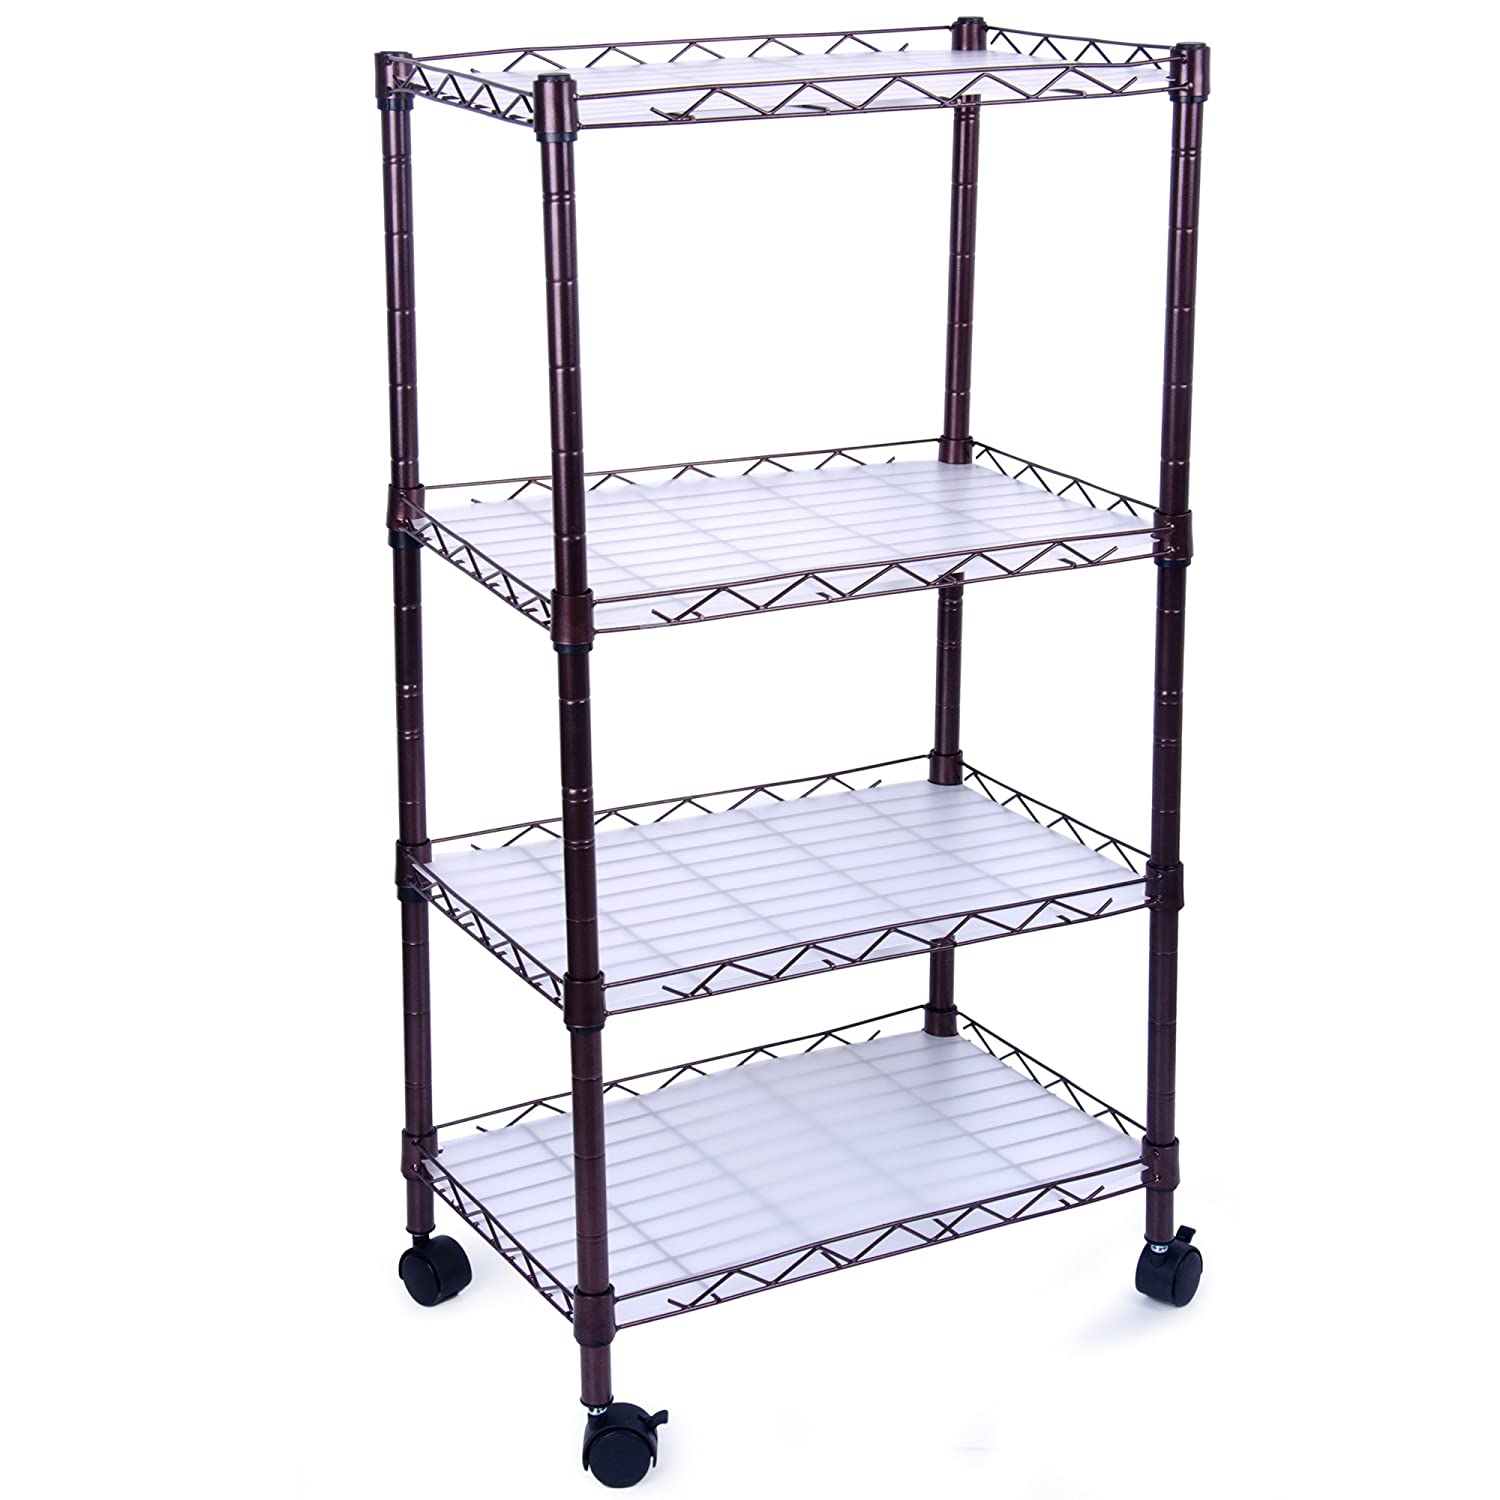 Amazon.com: 5 Tiers Adjustable Wire Metal Shelving Rack with Casters ...